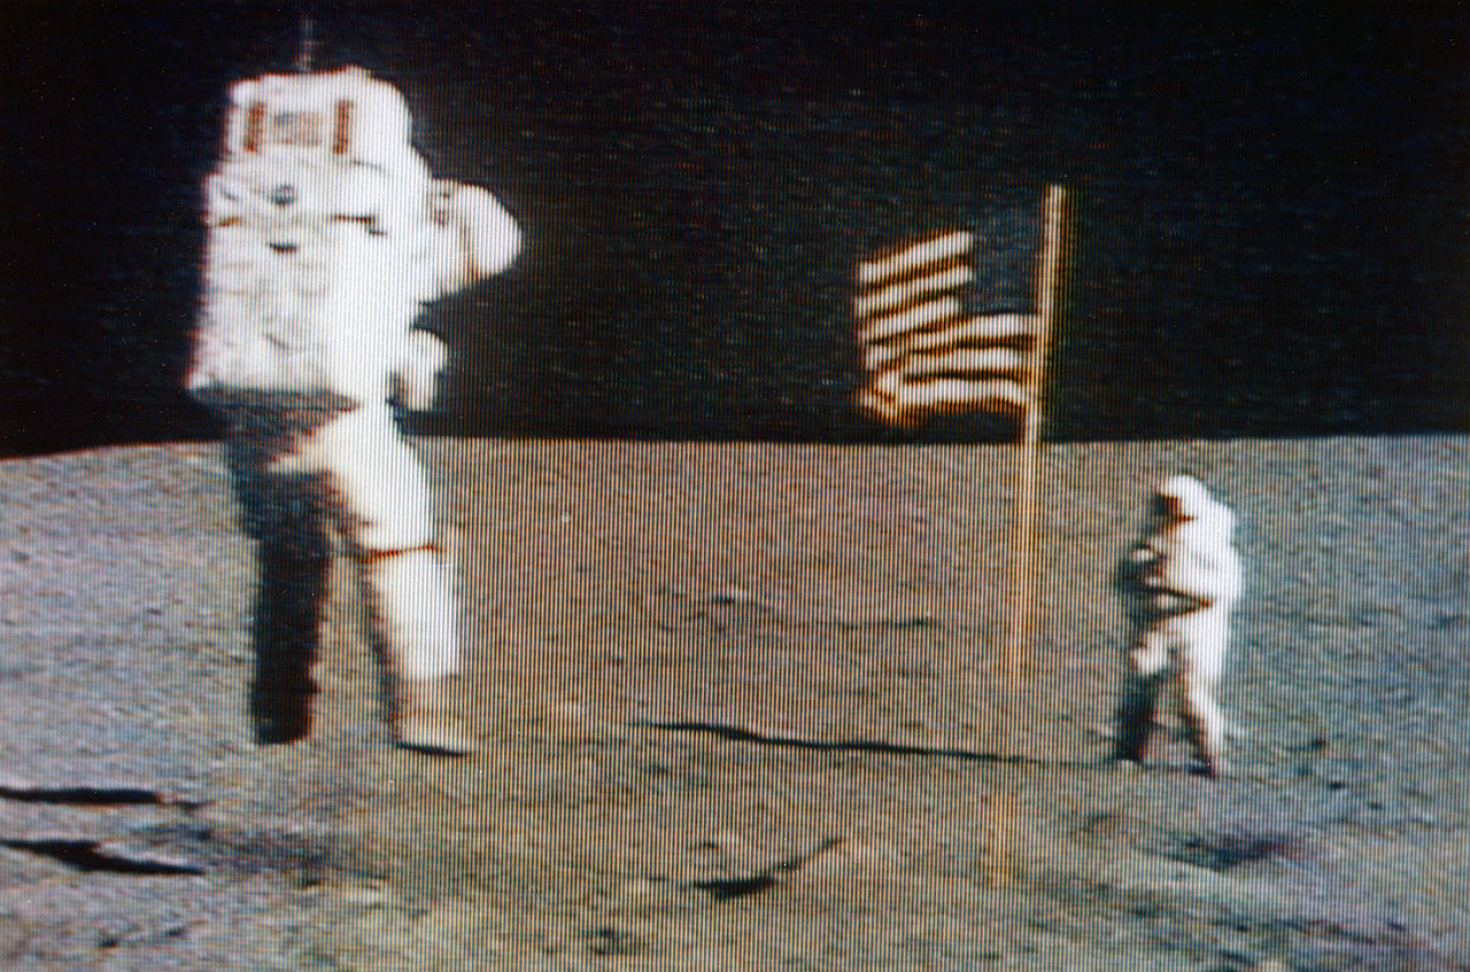 Fellow astronauts remember John Young as crewmate, hero and `great American` | collectSPACE